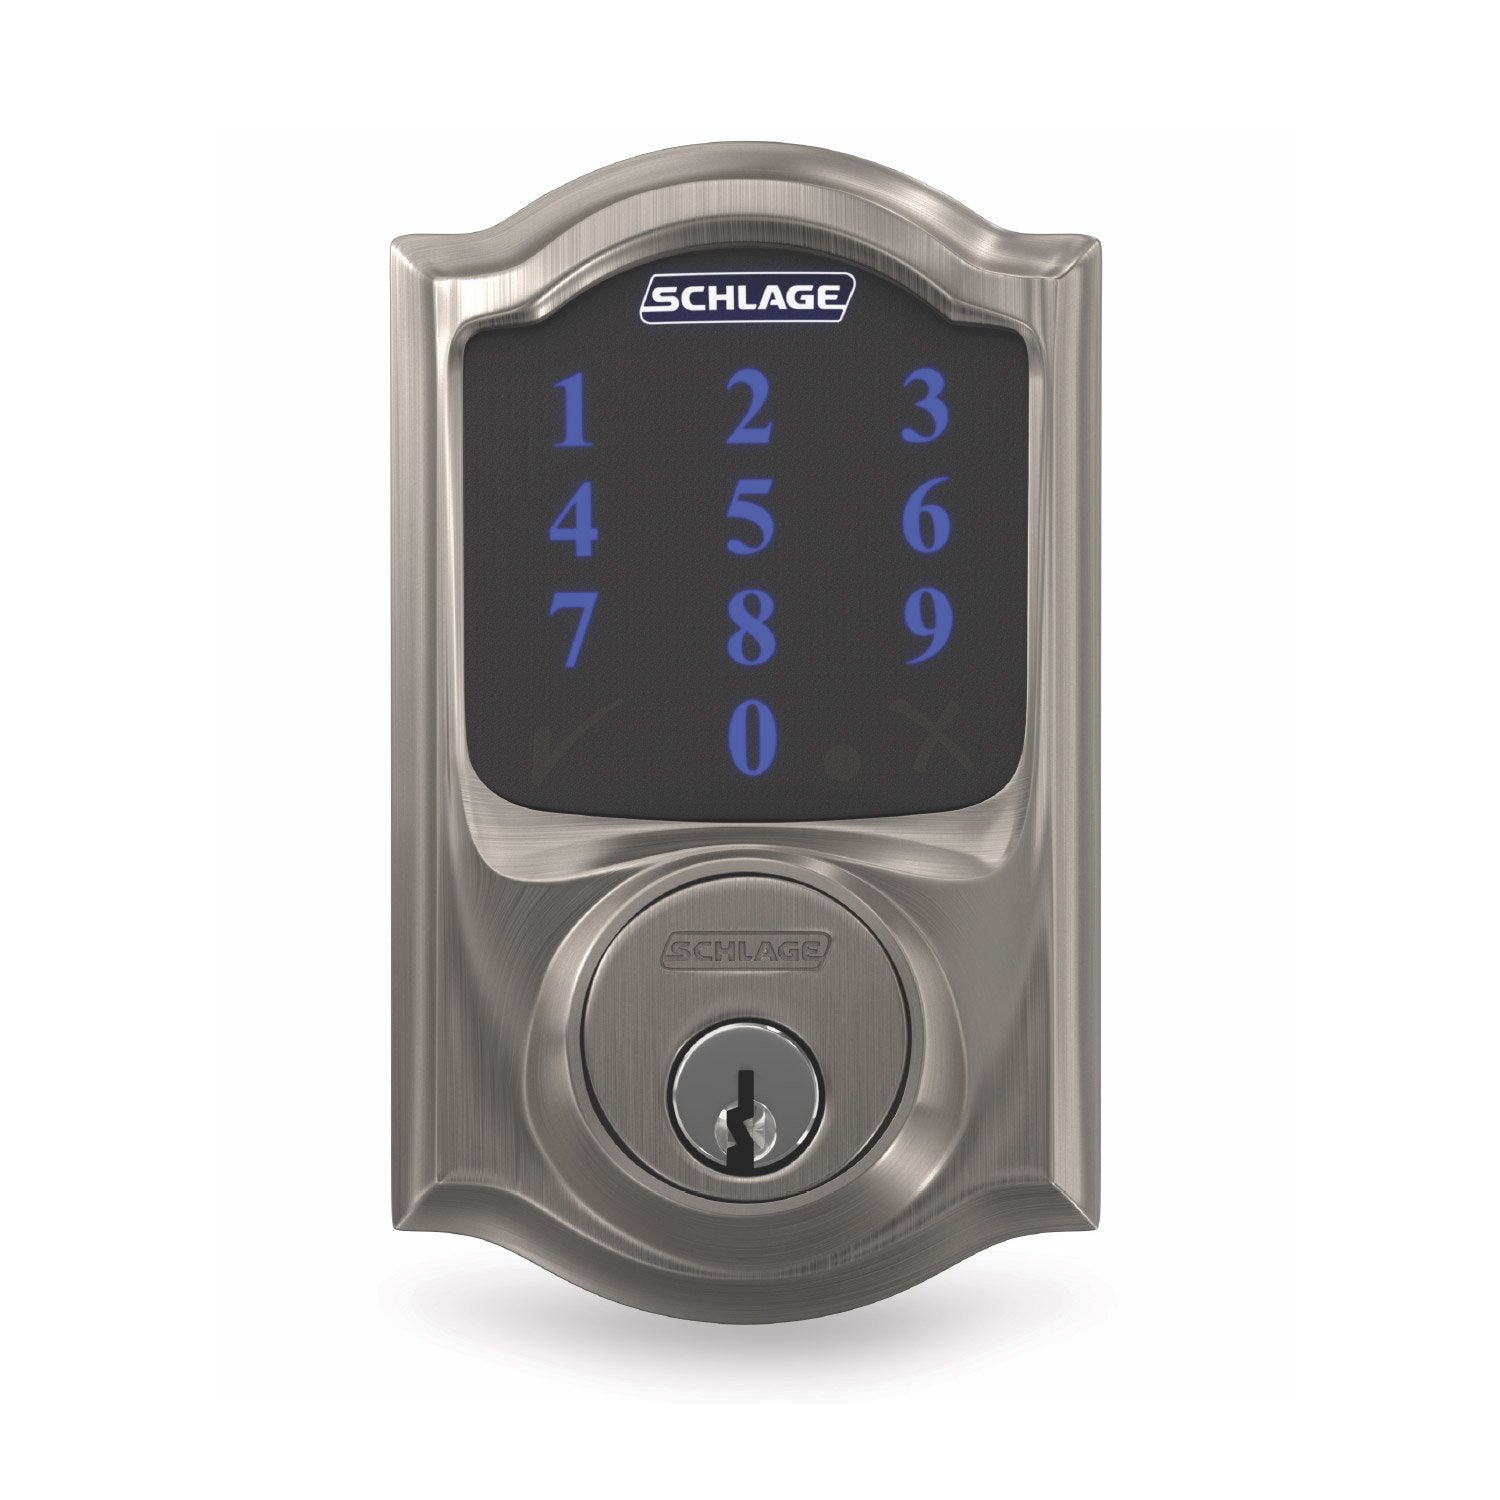 Schlage Connect Smart Deadbolt, Z-Wave Plus Enabled (for Works with Ring Alarm Security System) - Satin Nickel